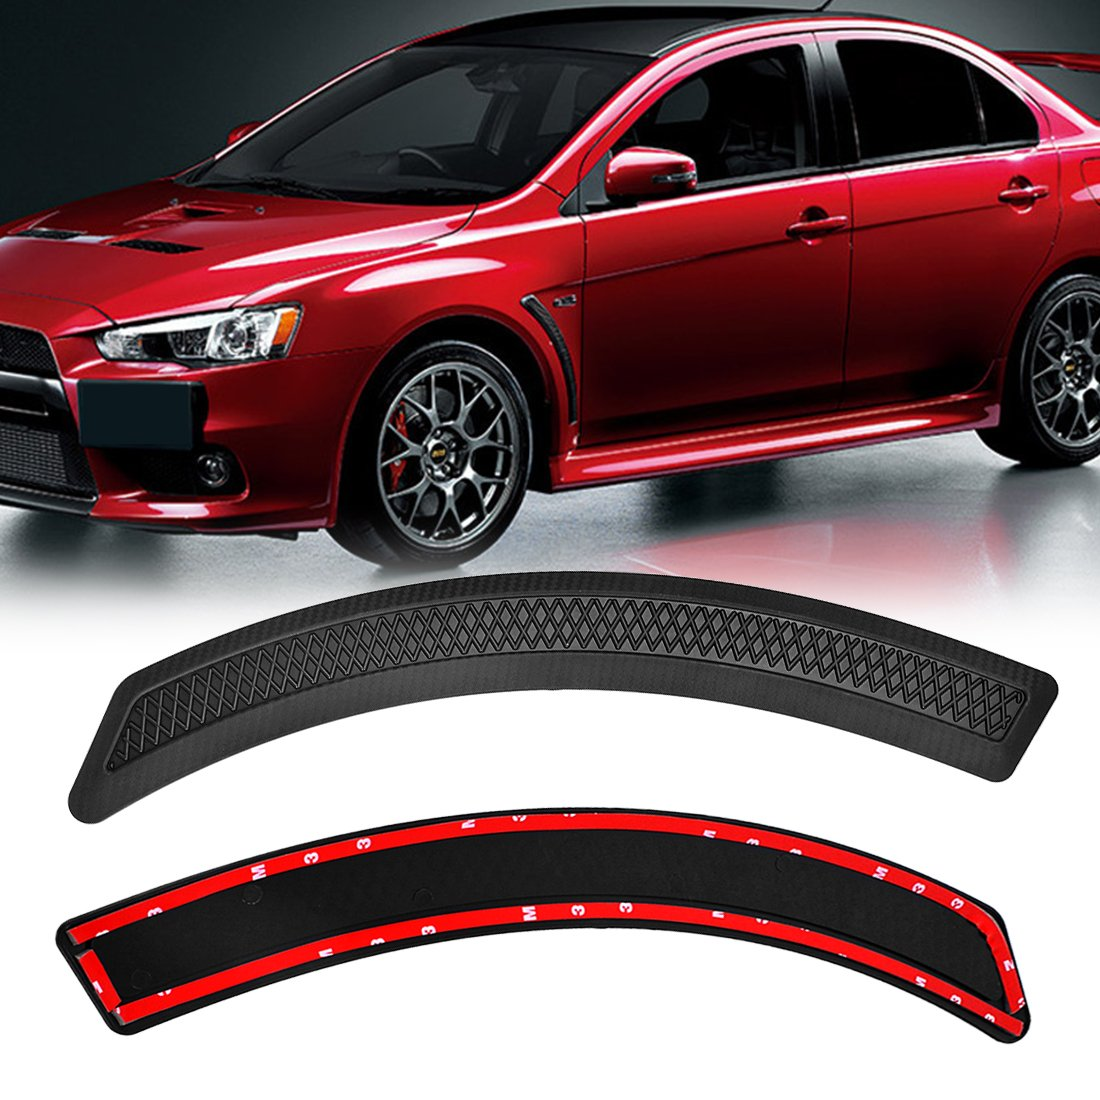 EVO 10 X Style Mesh PP Fender Side Vent Cover for 2008-2015 Mitsubishi Lancer